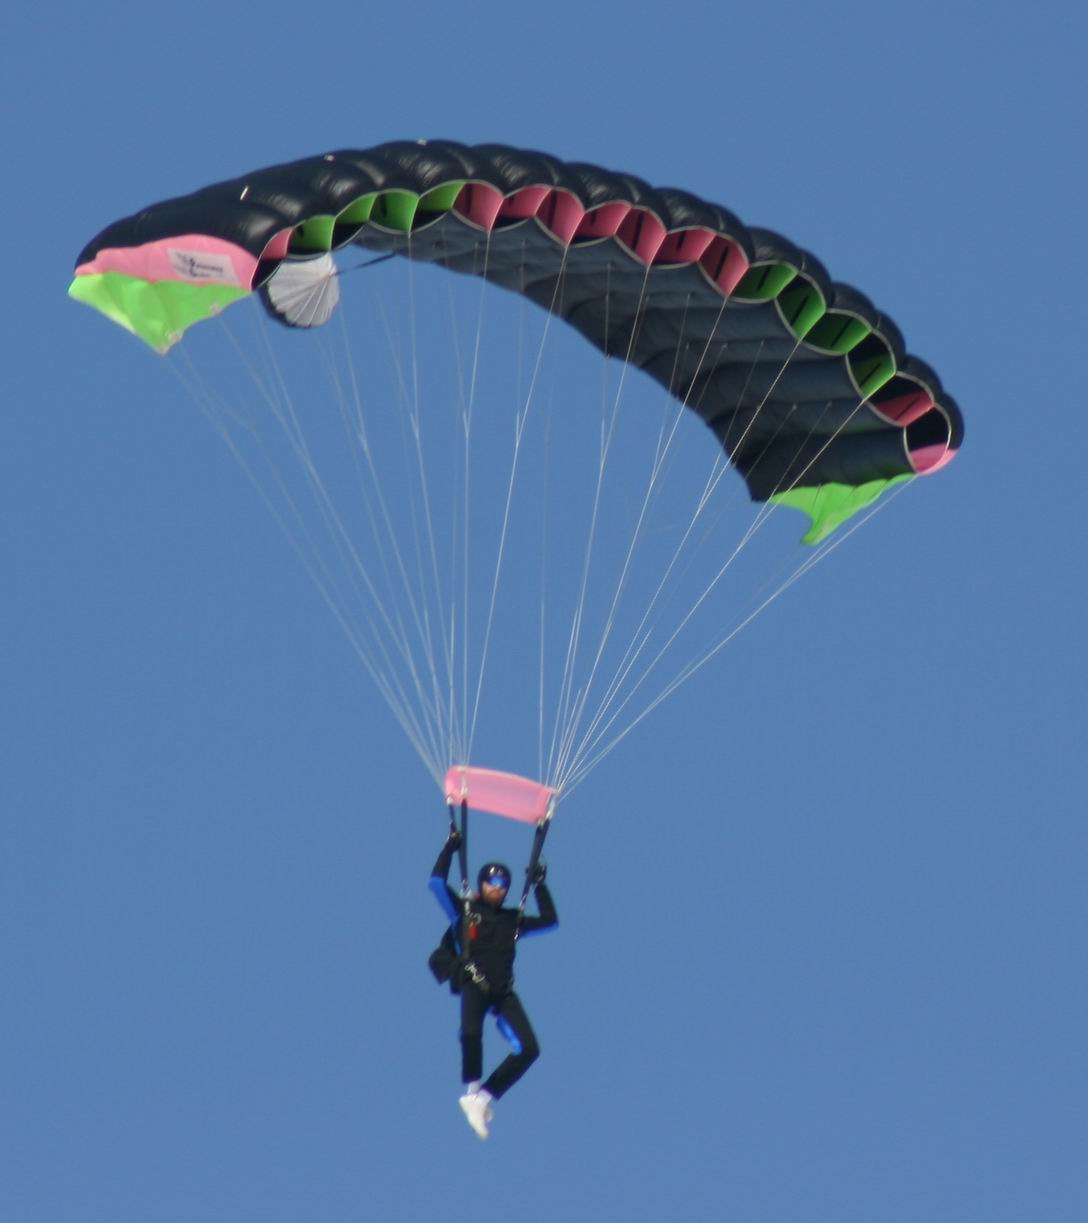 Skydiving Rig For Sale